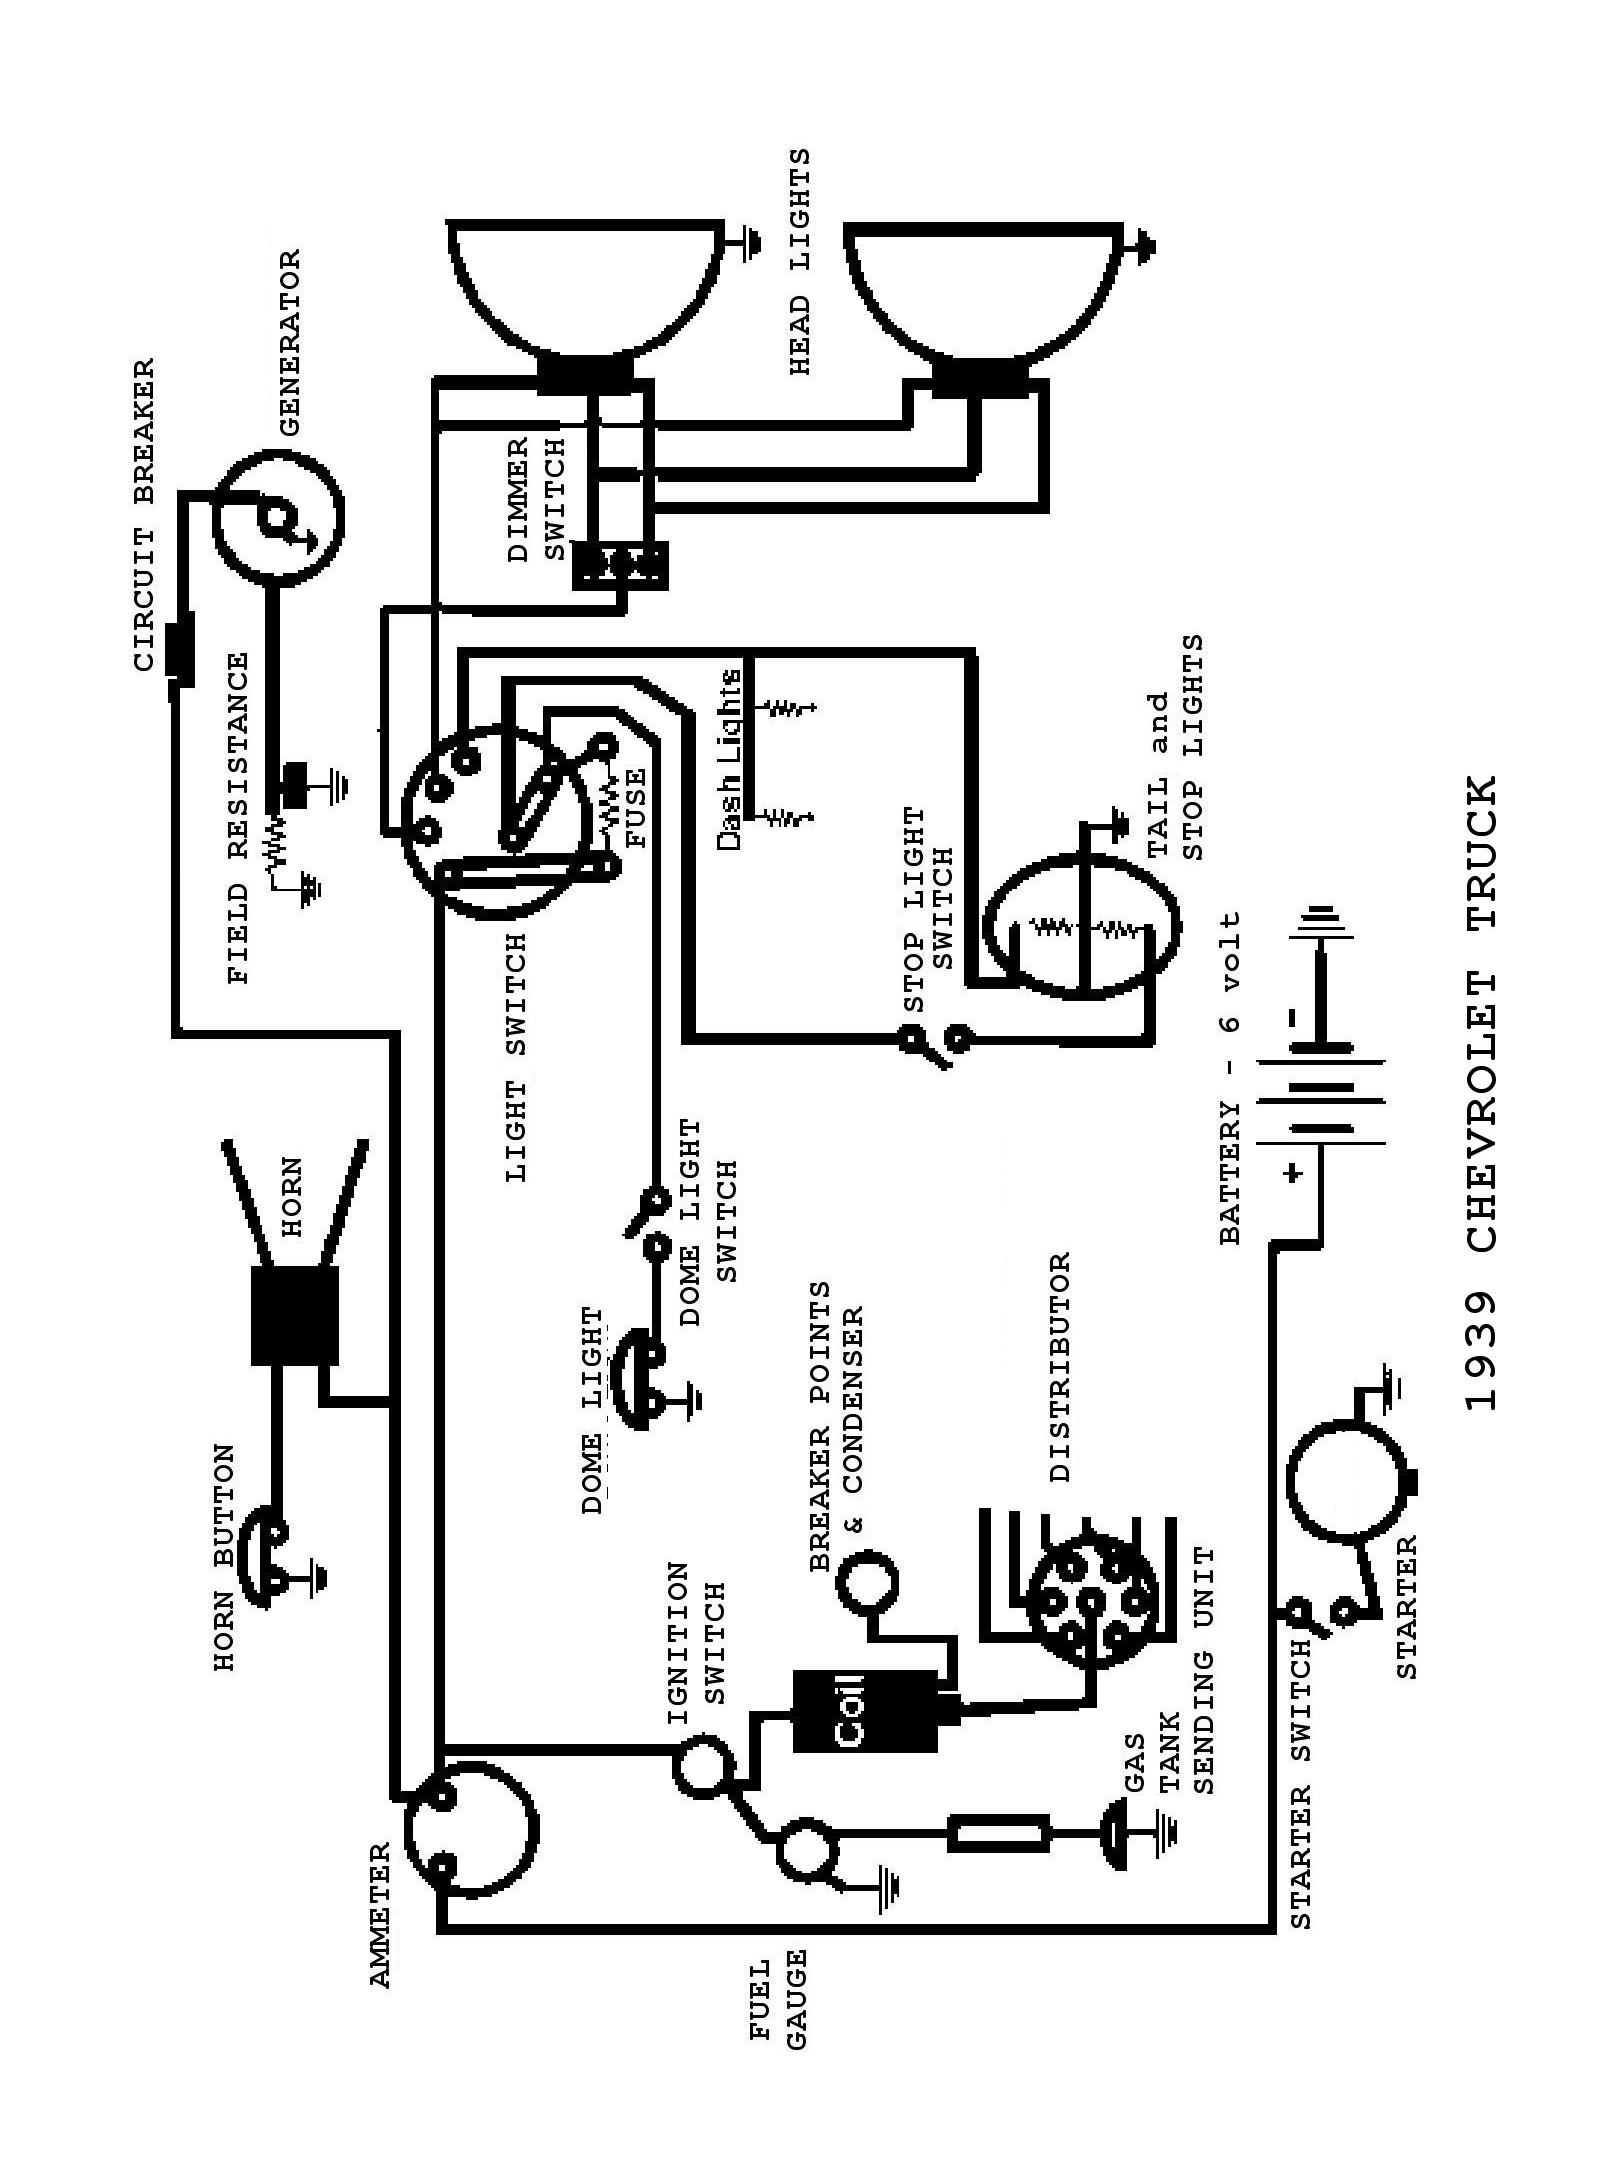 wiring diagrams ford pickups the wiring diagram 1949 ford pickup wiring dimmer switch 1949 printable wiring wiring diagram